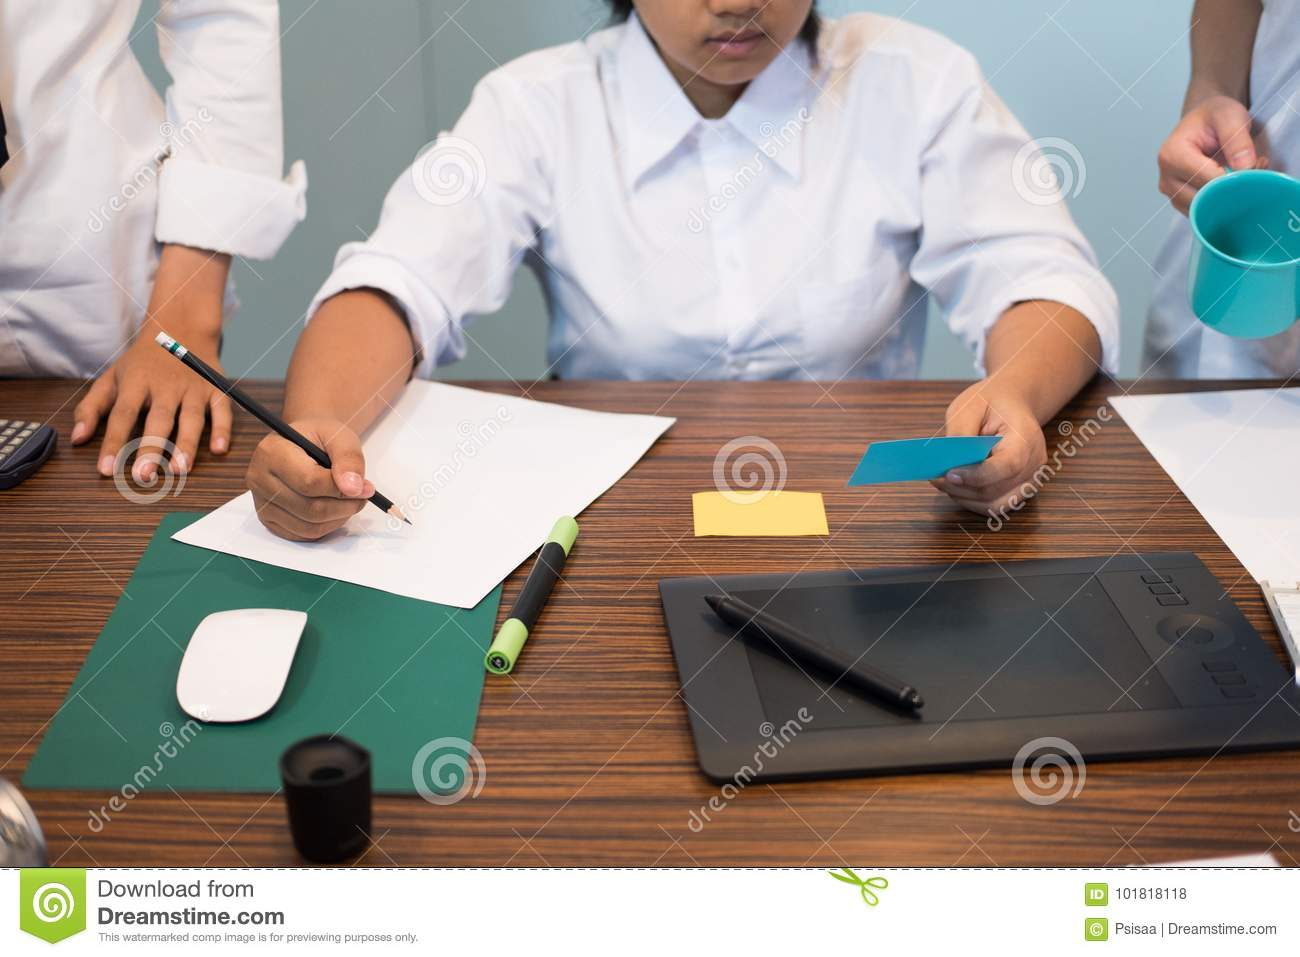 Interior designer working with graphic tablet at workplace arti stock photo image 101818118 for Best tablet for interior designers